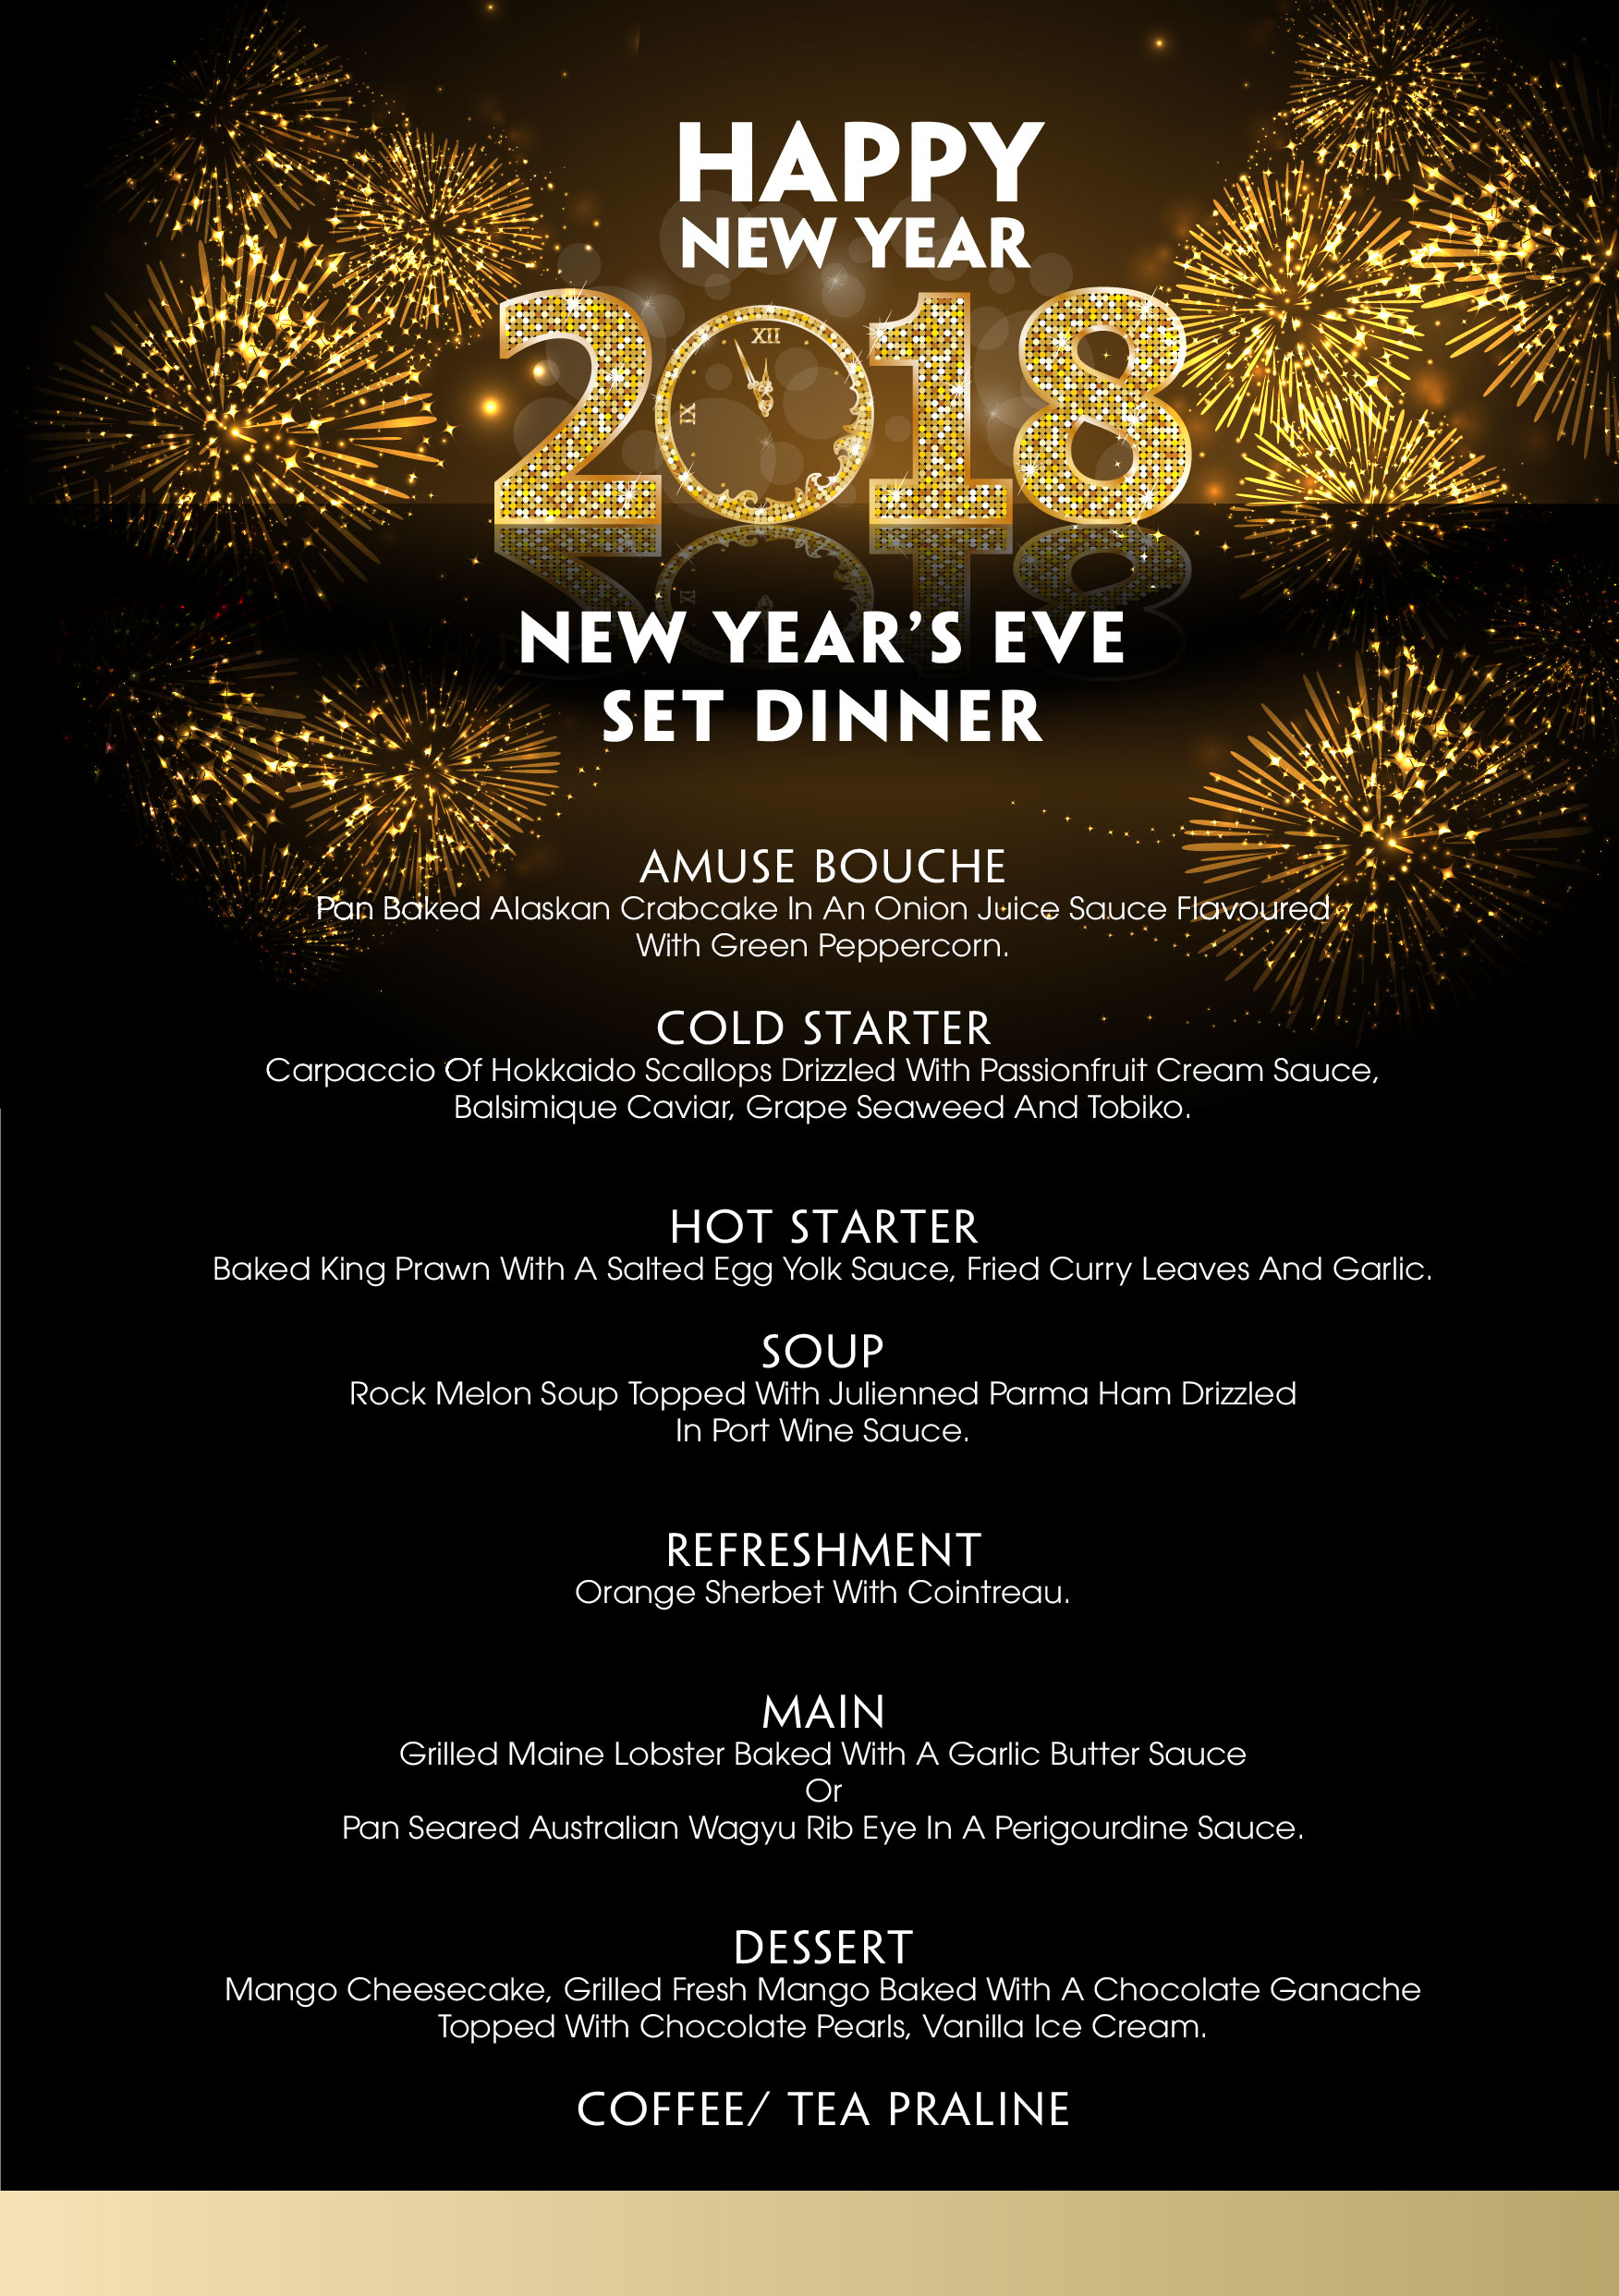 New Year Eve 2017 set menu